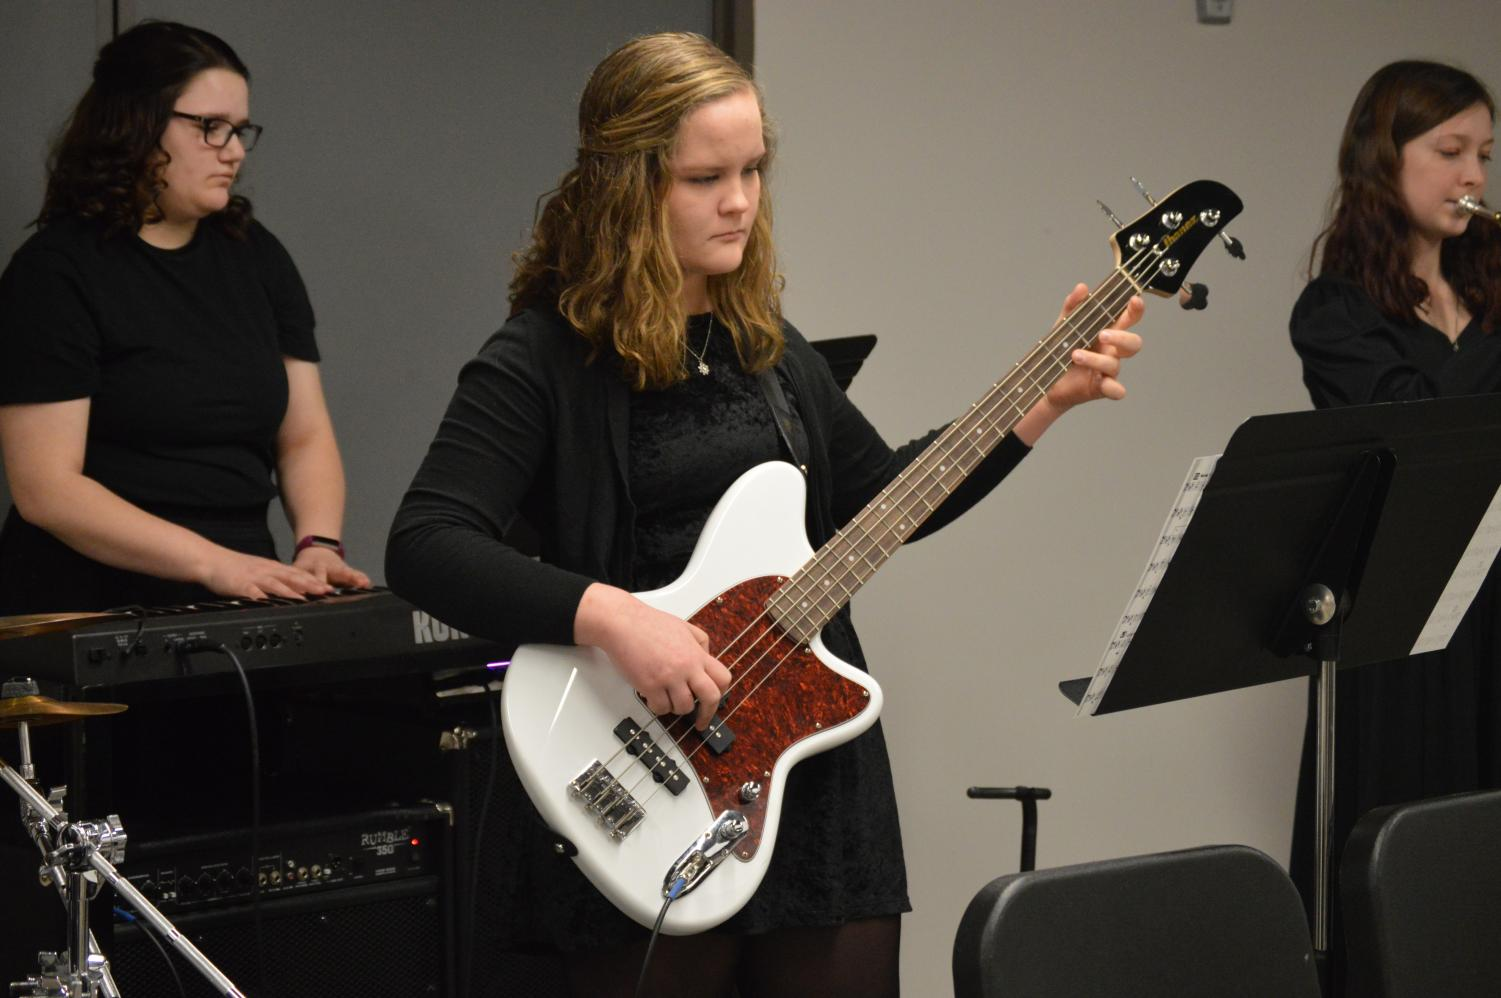 Senior Abigail Sullivan plays her guitar with the rest of the band during warm ups.